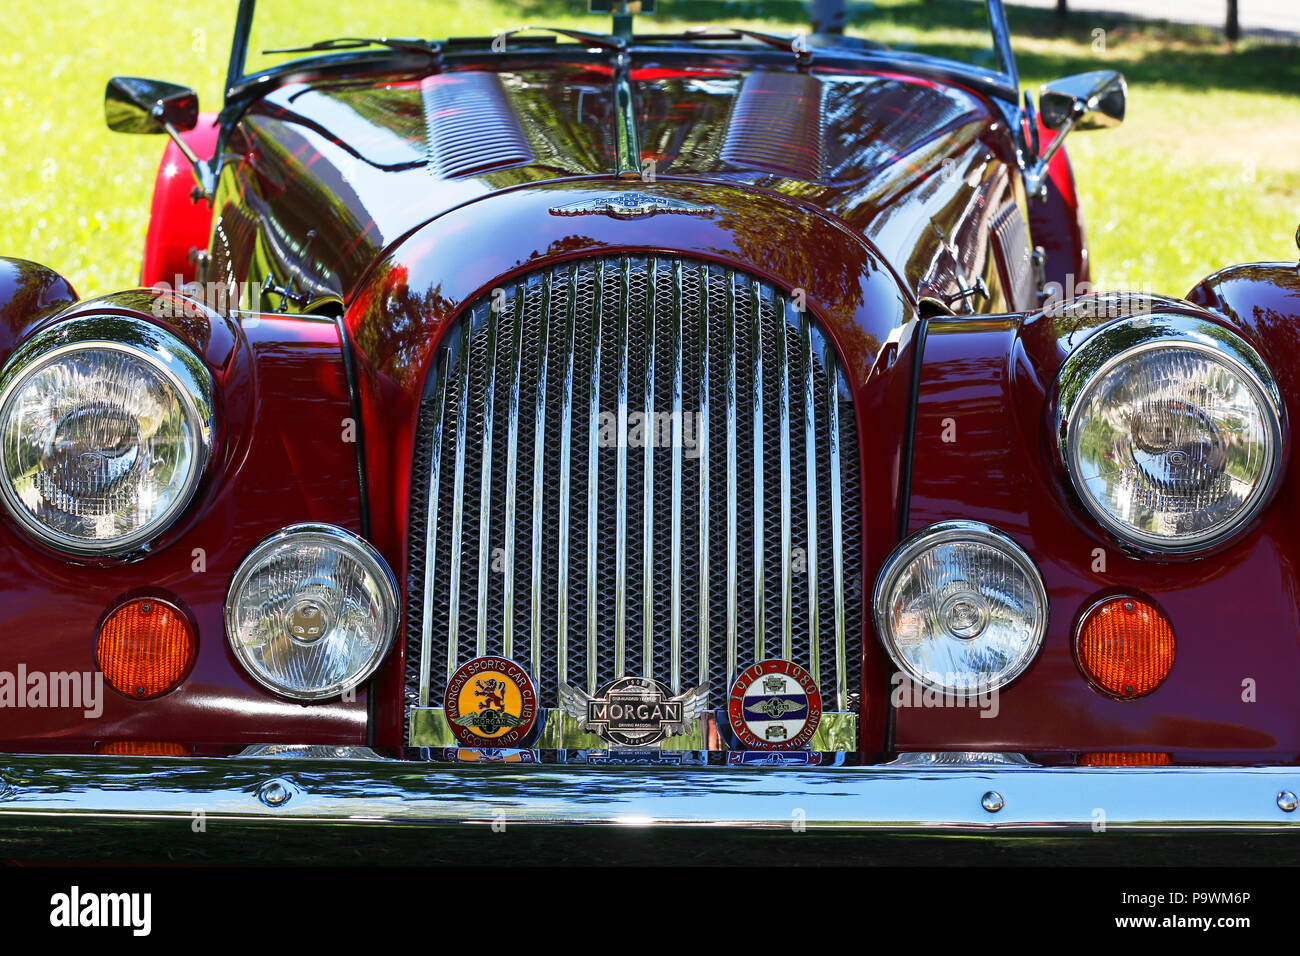 Oldtimer Morgan Plus 8, radiator grille with headlights, front view, historic vehicle, Germany - Stock Image